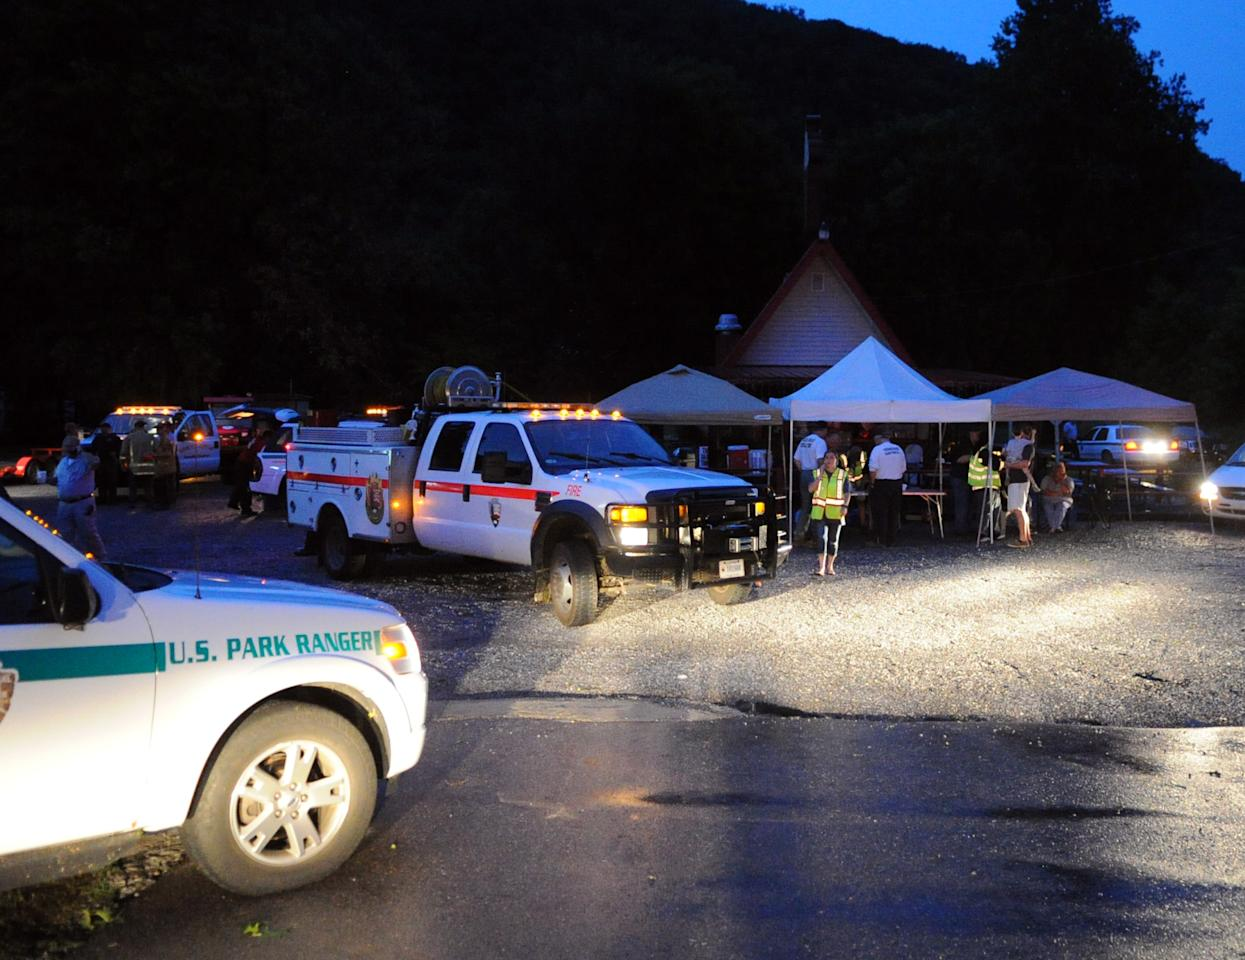 Rescue workers gather at a makeshift command at the Burger Master Drive-In in Townsend, Tenn., as crews arrive to help visitors to the Great Smoky Mountains National Park that are trapped in the Cades Cove area after a storm caused severe damage Thursday, July 5, 2012. According to the park's Deputy Superintendent Kevin Fitzgerald, hundreds of trees were downed during the storm and crews are working to clear them in order to gain access to those who are trapped. (AP Photo/Knoxville News Sentinel, Adam Brimer)